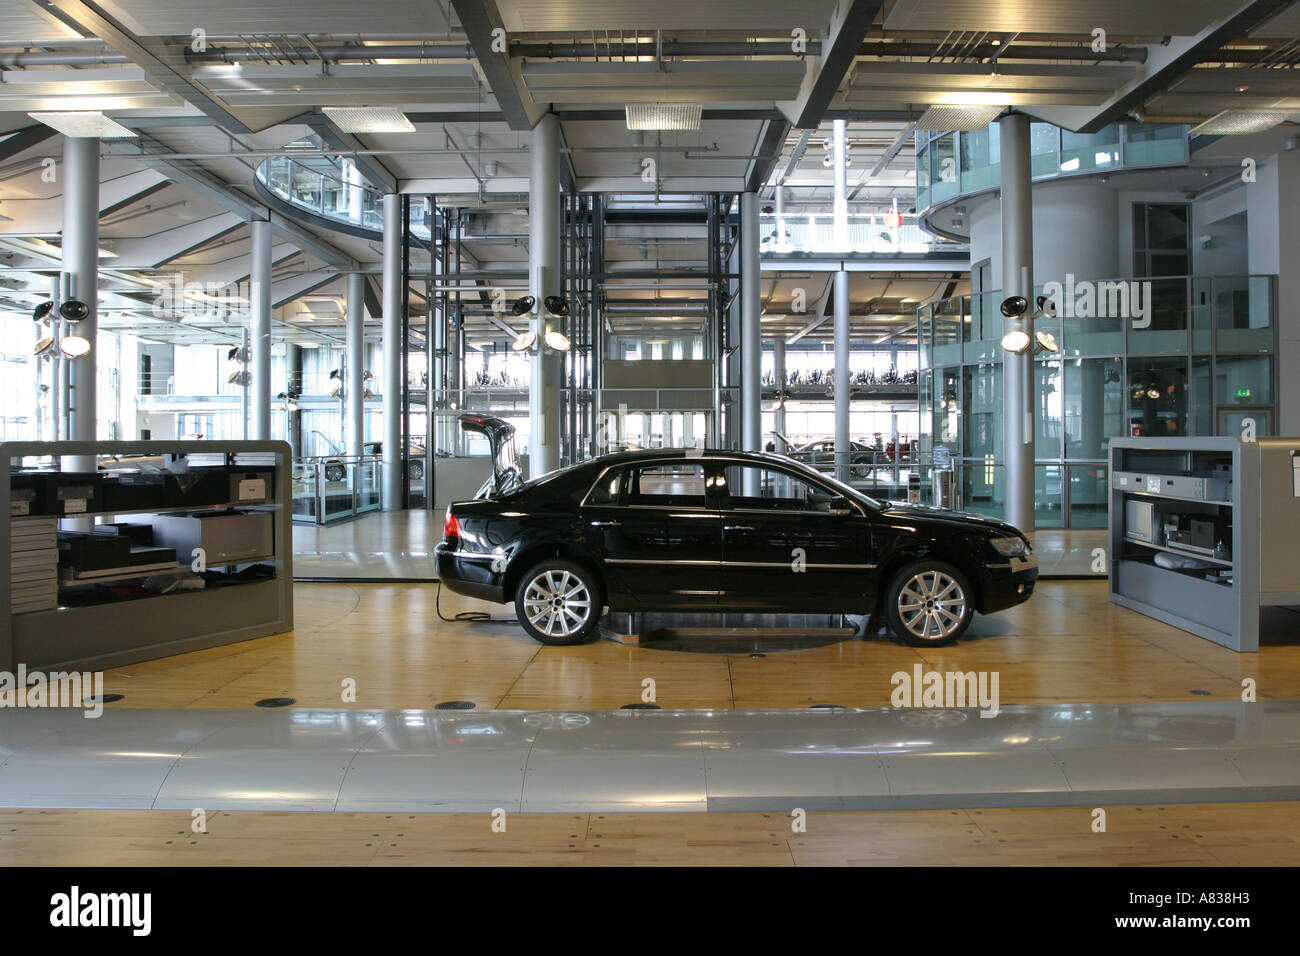 a vw phaeton at volkswagons glass factory in dresden germany stock photo royalty free image. Black Bedroom Furniture Sets. Home Design Ideas